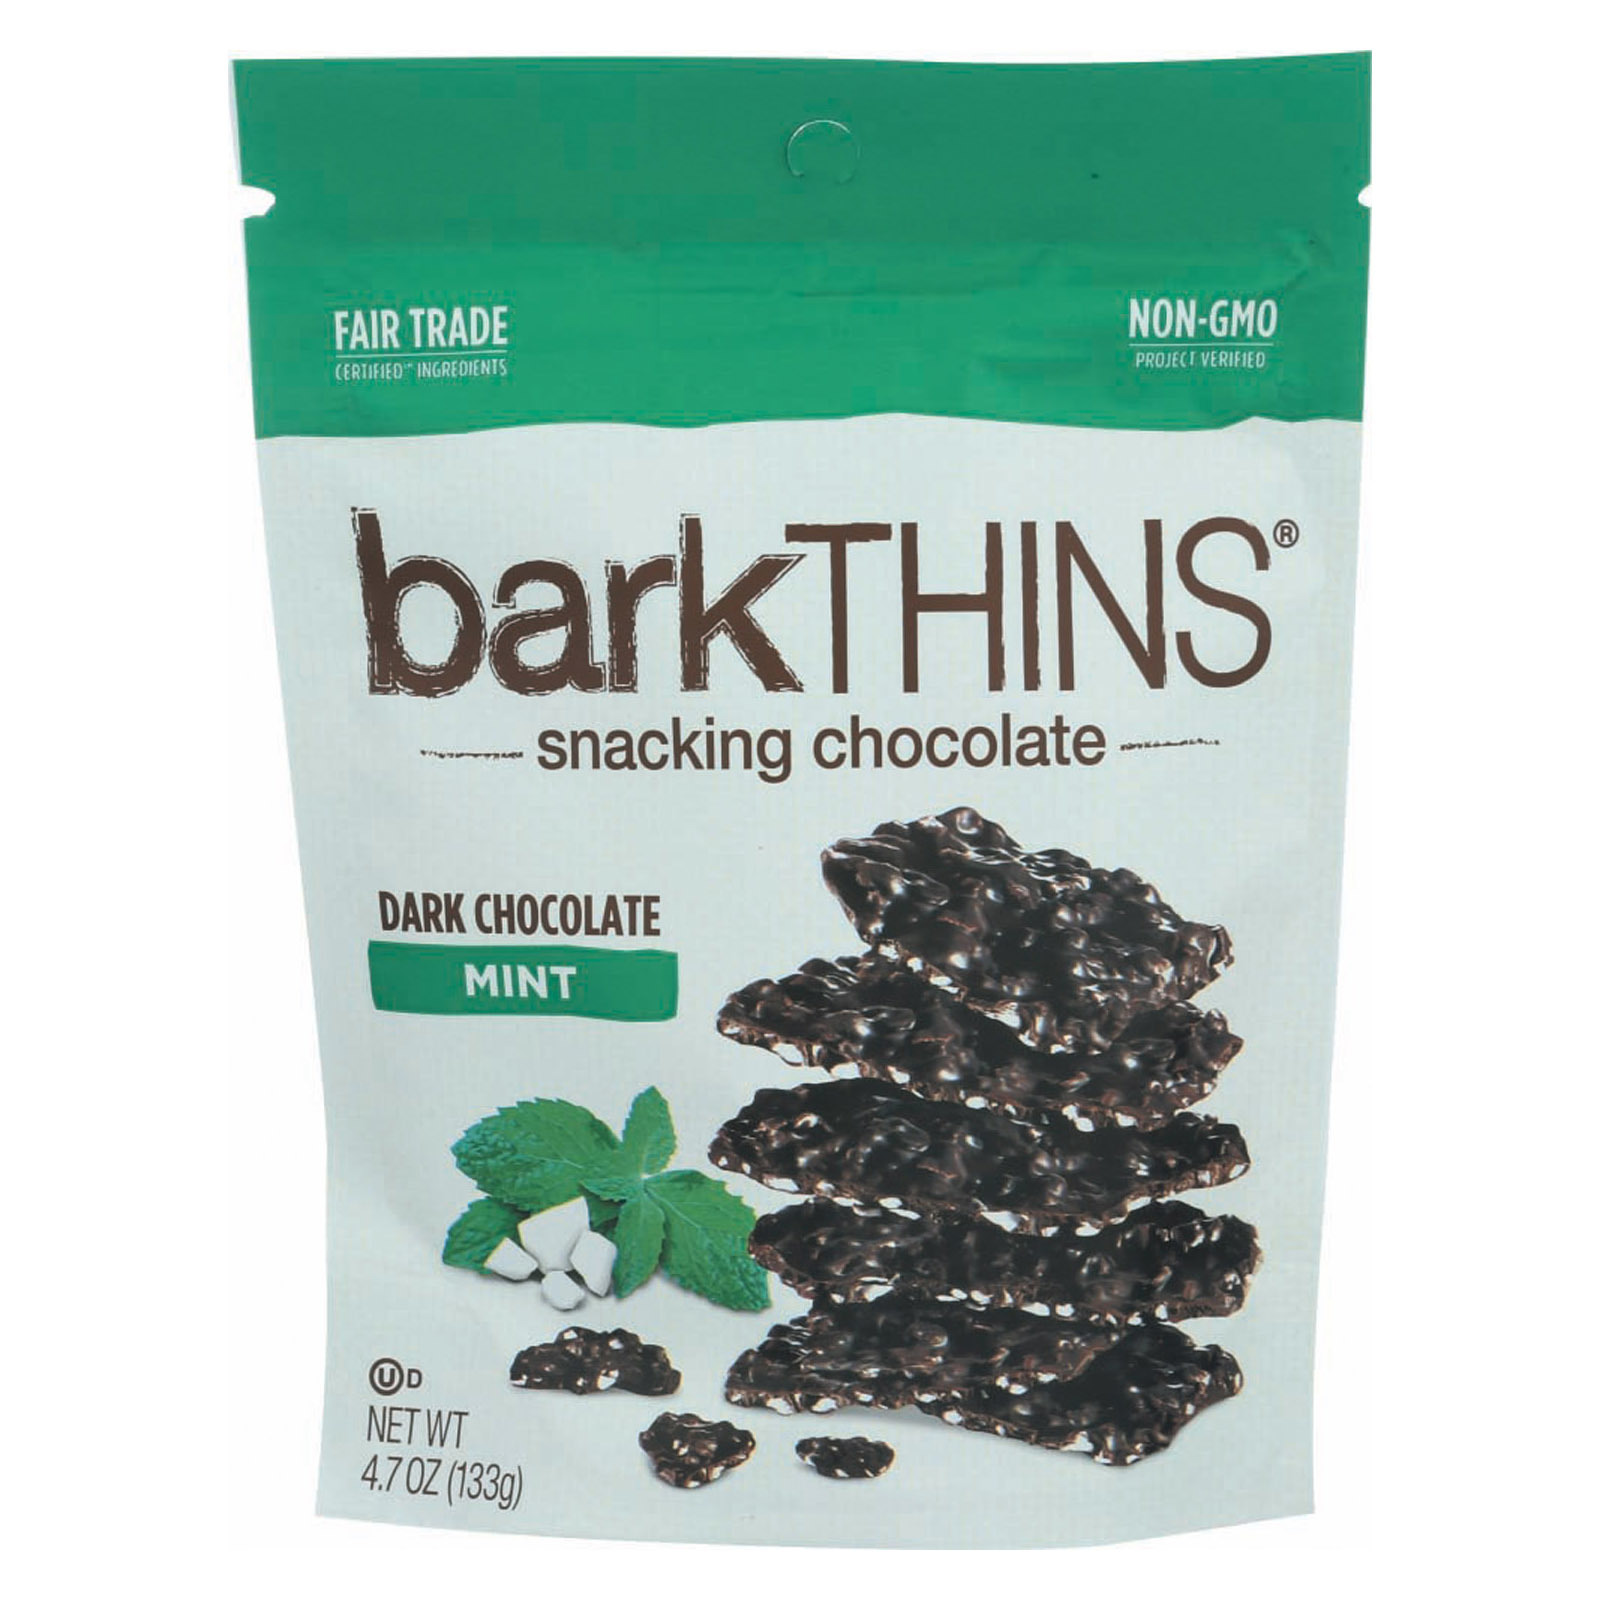 Bark Thins Snacking Dark Chocolate - Mint - Case of 12 - 4.7 oz.